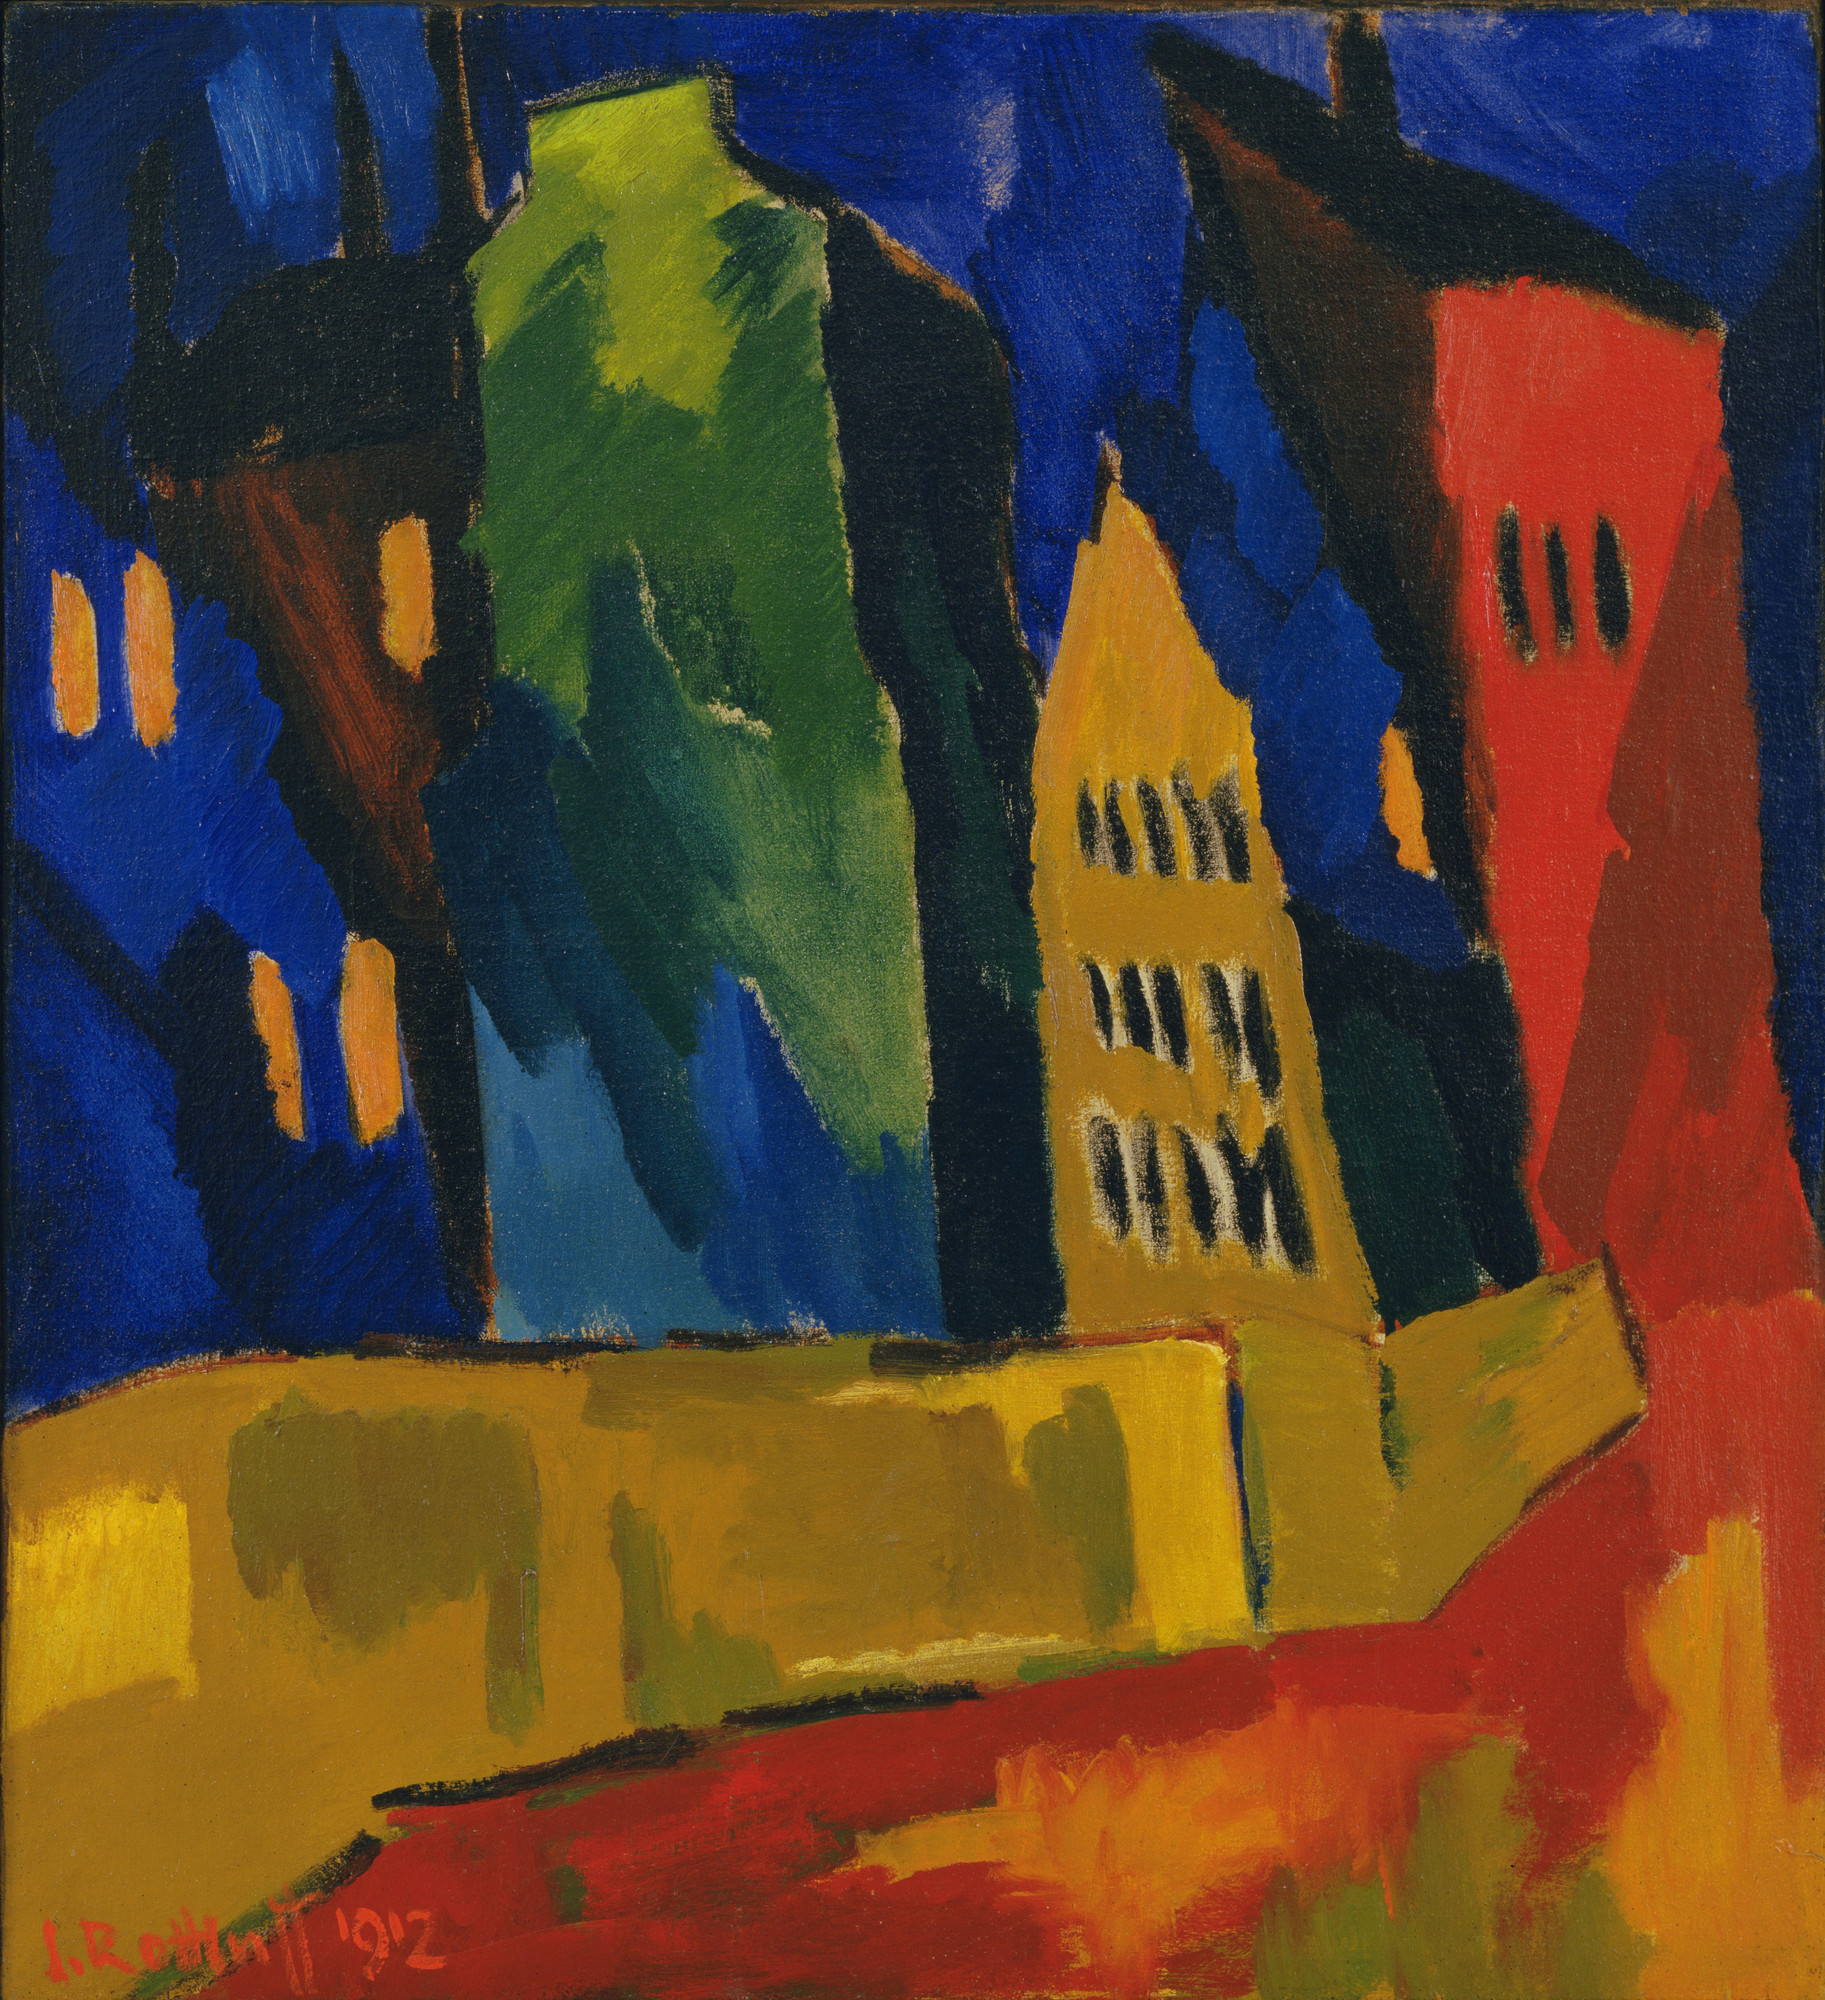 Karl Schmidt-Rottluff. Houses at Night. 1912